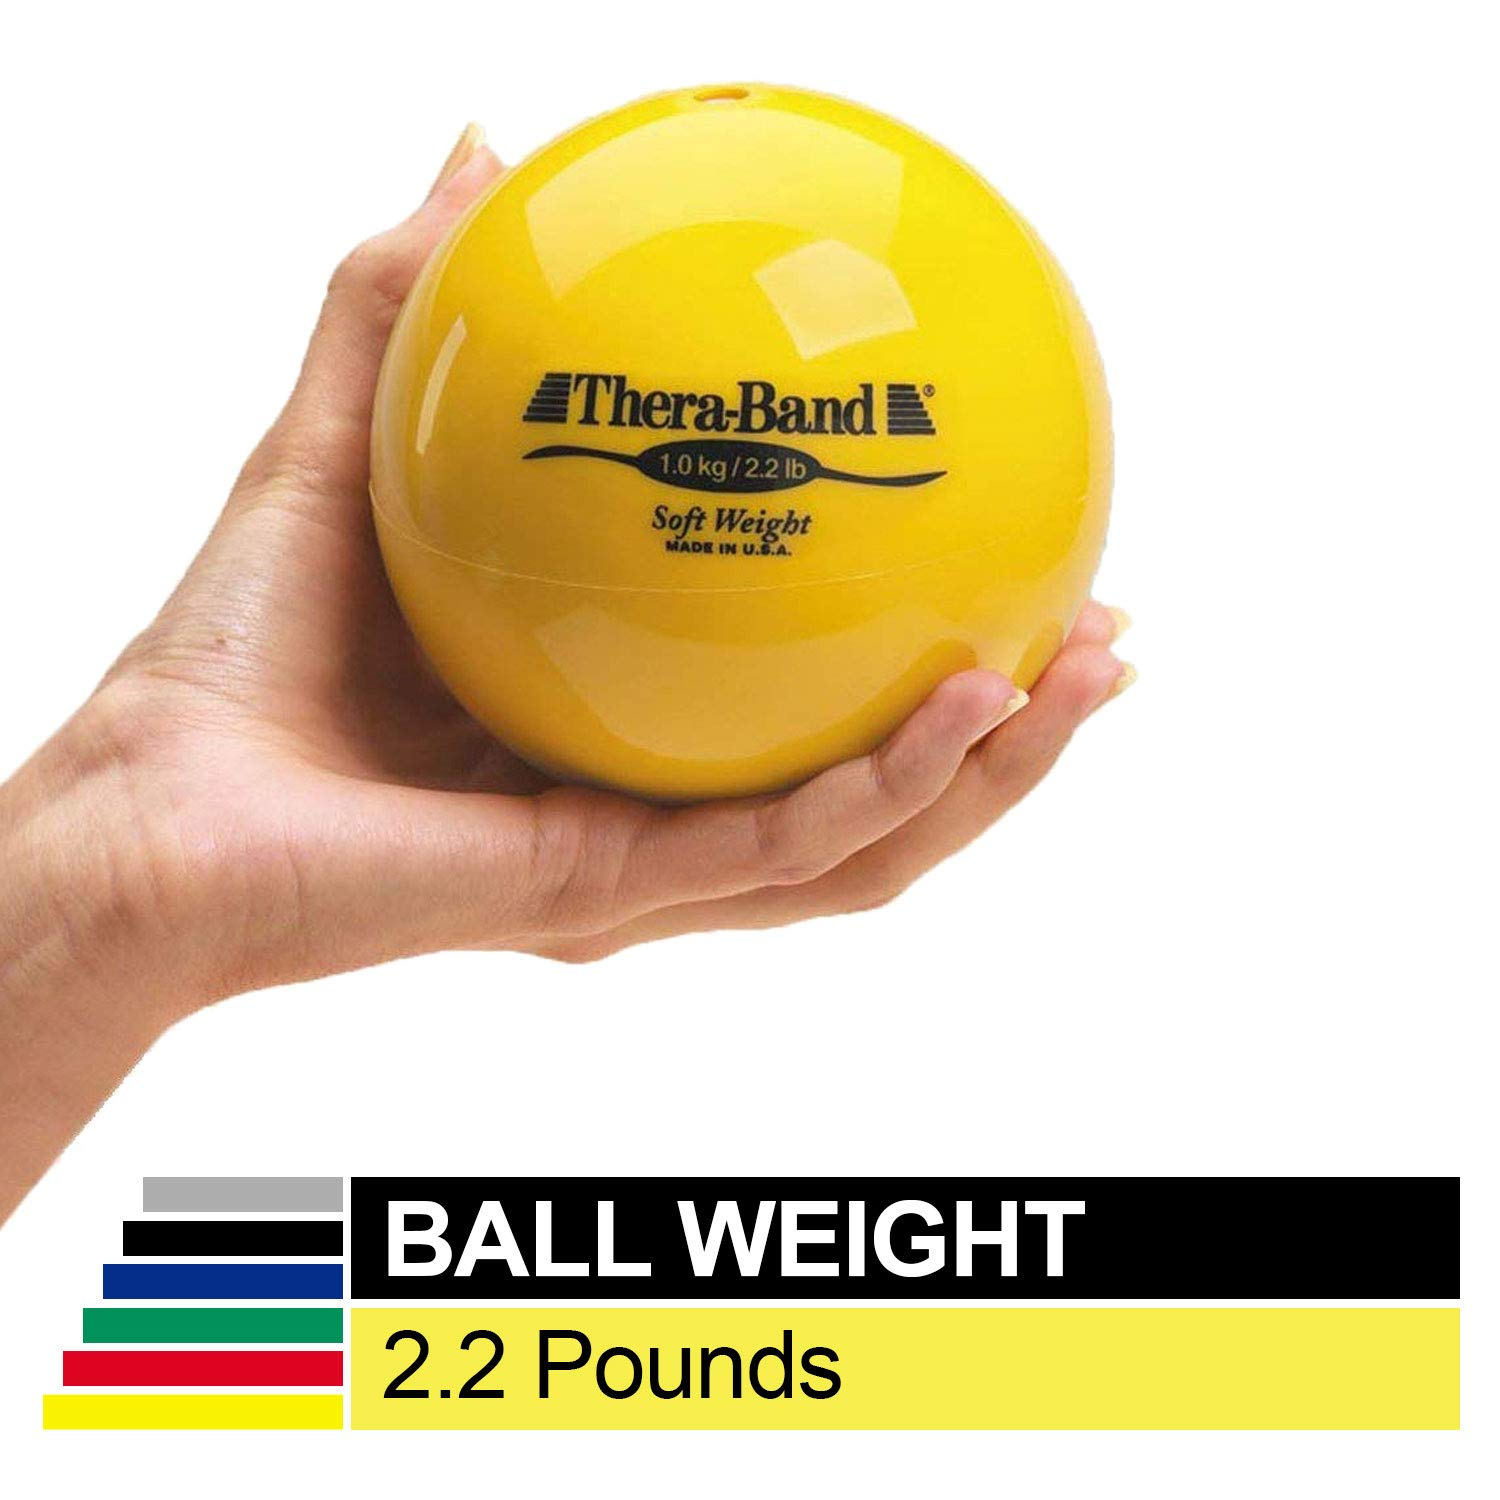 Biofreeze Soft Weight, Hand Held Ball Shaped Isotonic Weight for Strength Training Rehab Exercises, Pilates, Yoga, Toning Workouts, Home Exercise Equipment Balls, 4.5 Diameter, Yellow, 2.2 Pounds